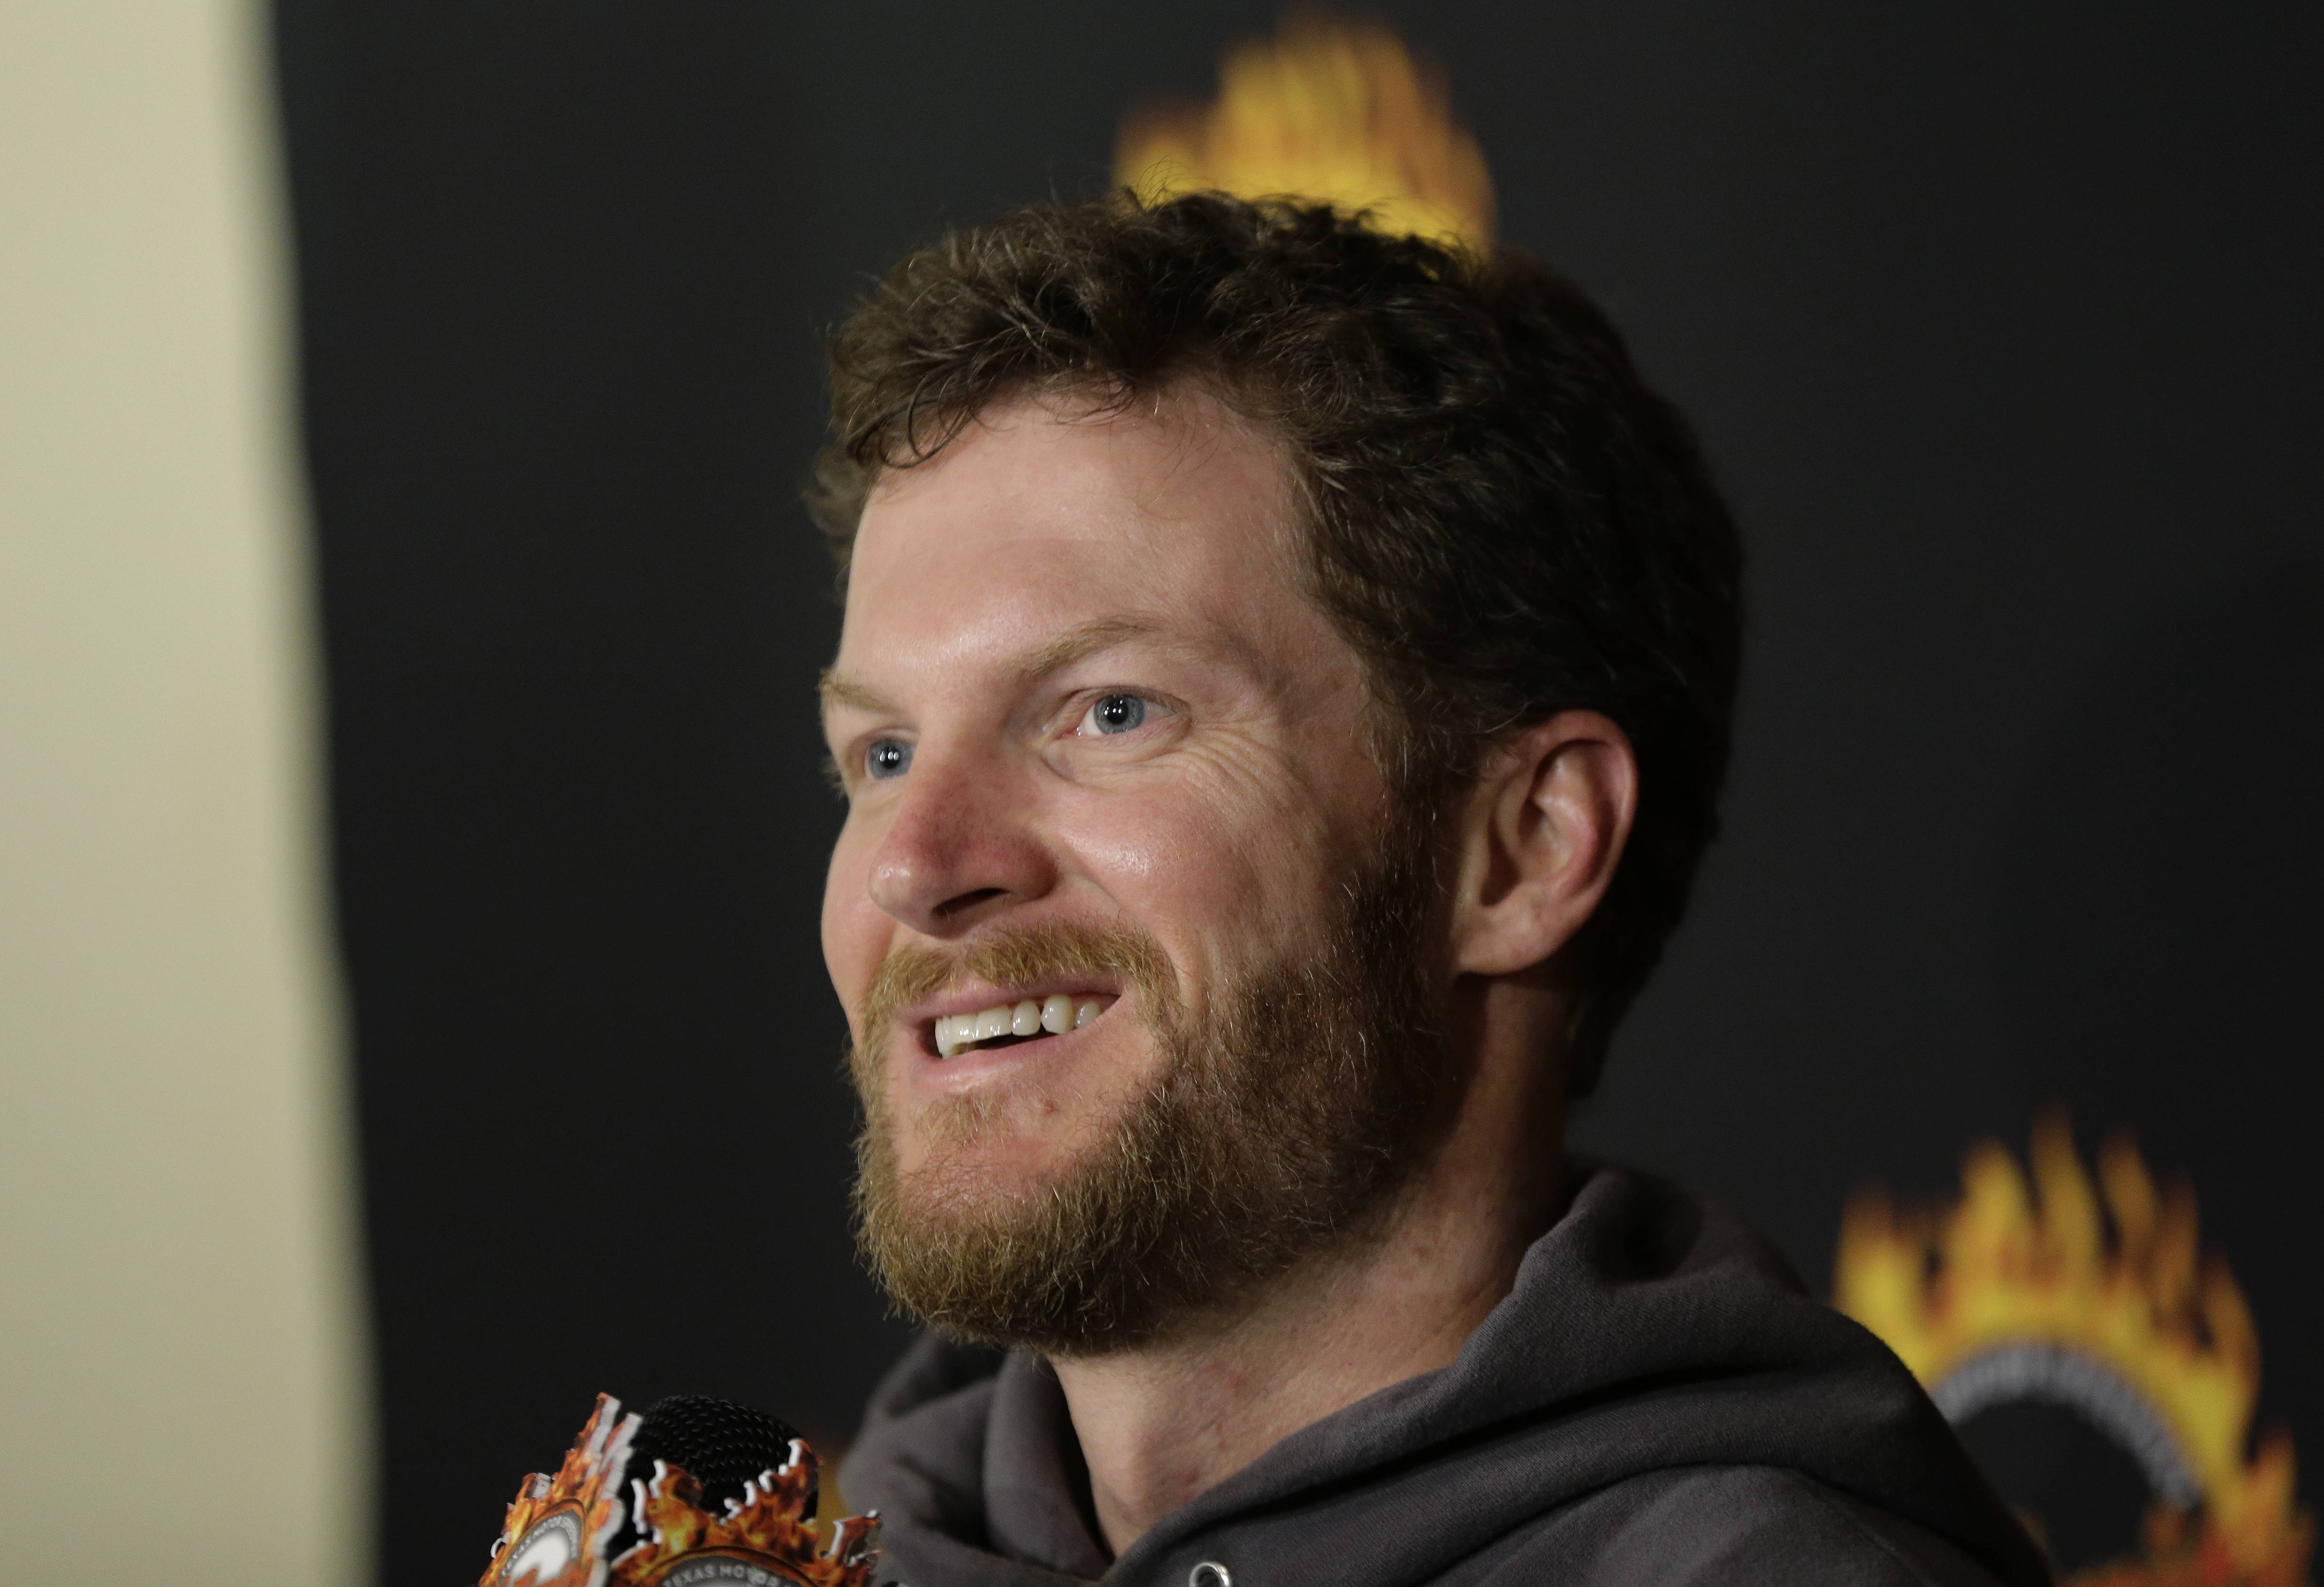 Daytona 500 winner Dale Earnhardt Jr. talks to the media during a victory tour stop, Tuesday, Feb. 25, 2014, in Austin, Texas. Earnhardt won his second Daytona 500 Sunday.